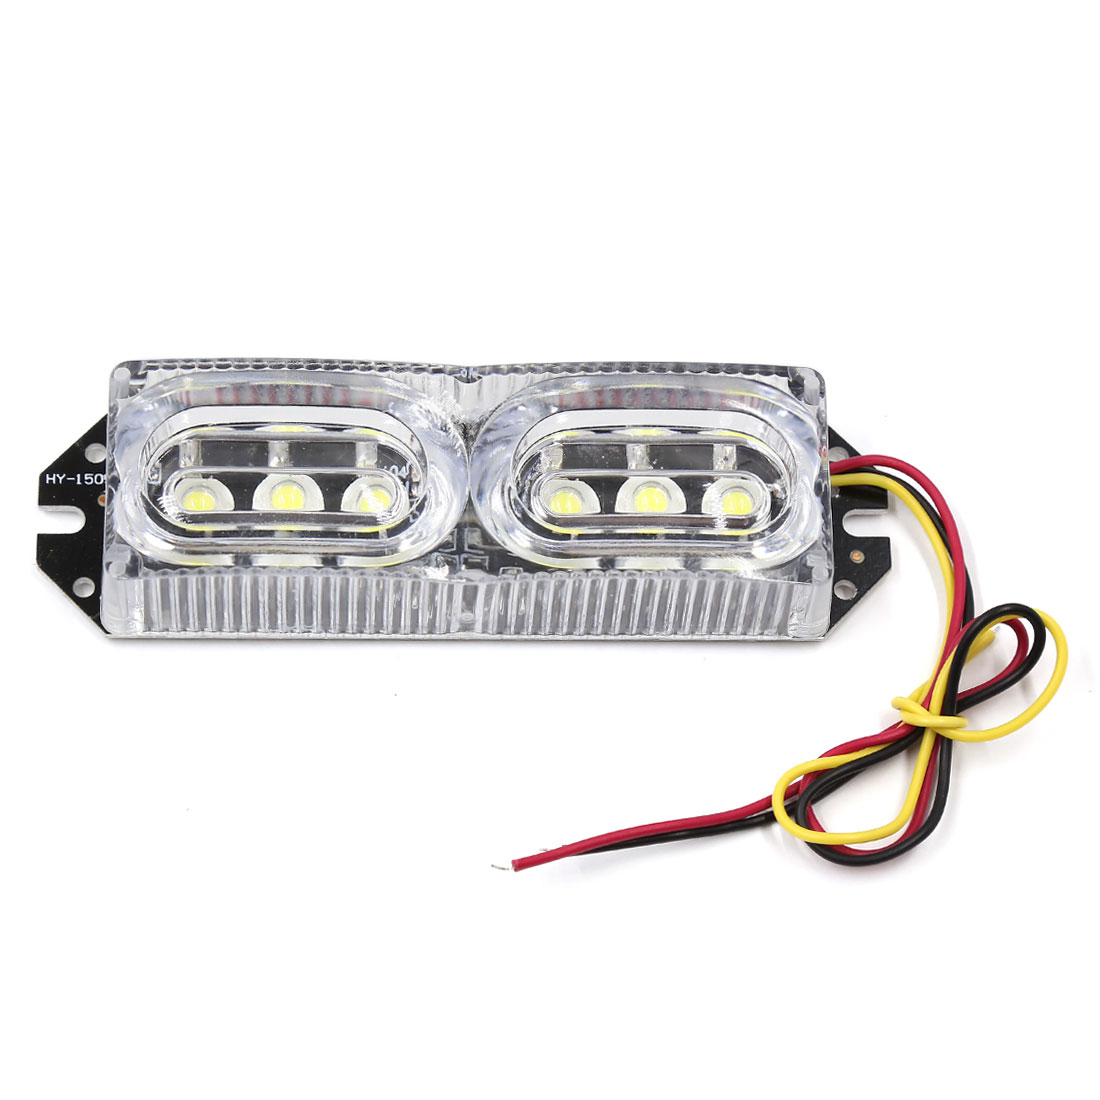 Auto Car Water-proof Celar Shell White 6 LED Turn Signal Light Stop Lamp DC 12V